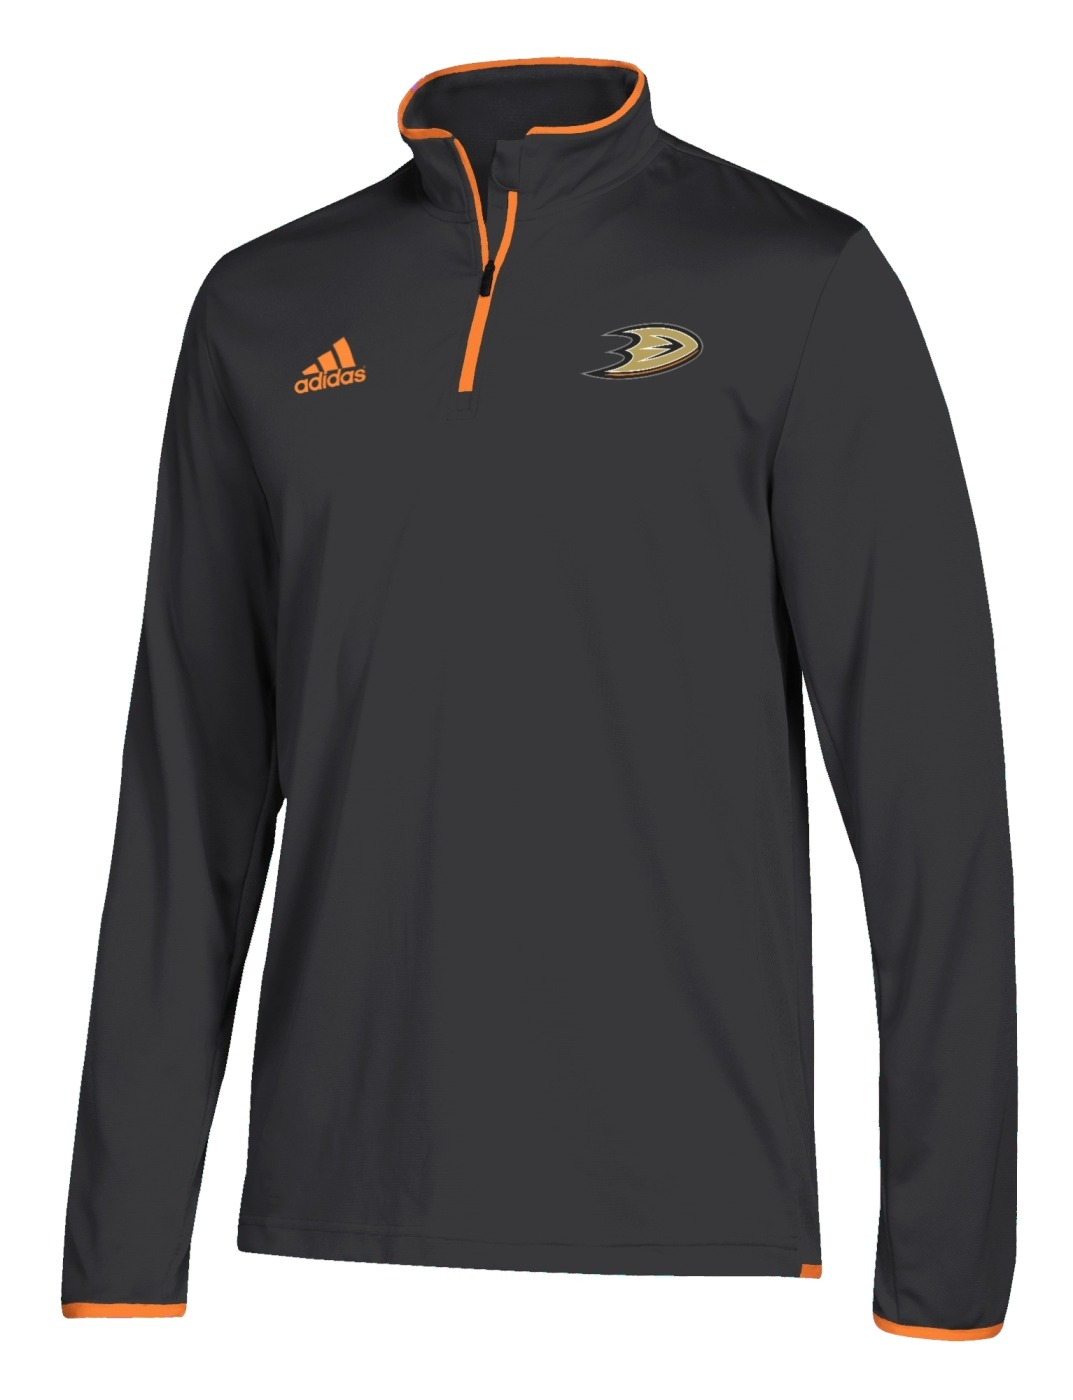 Anaheim Ducks Adidas NHL Men's 2018 Authentic Pro 1/4 Zip Wind Shirt